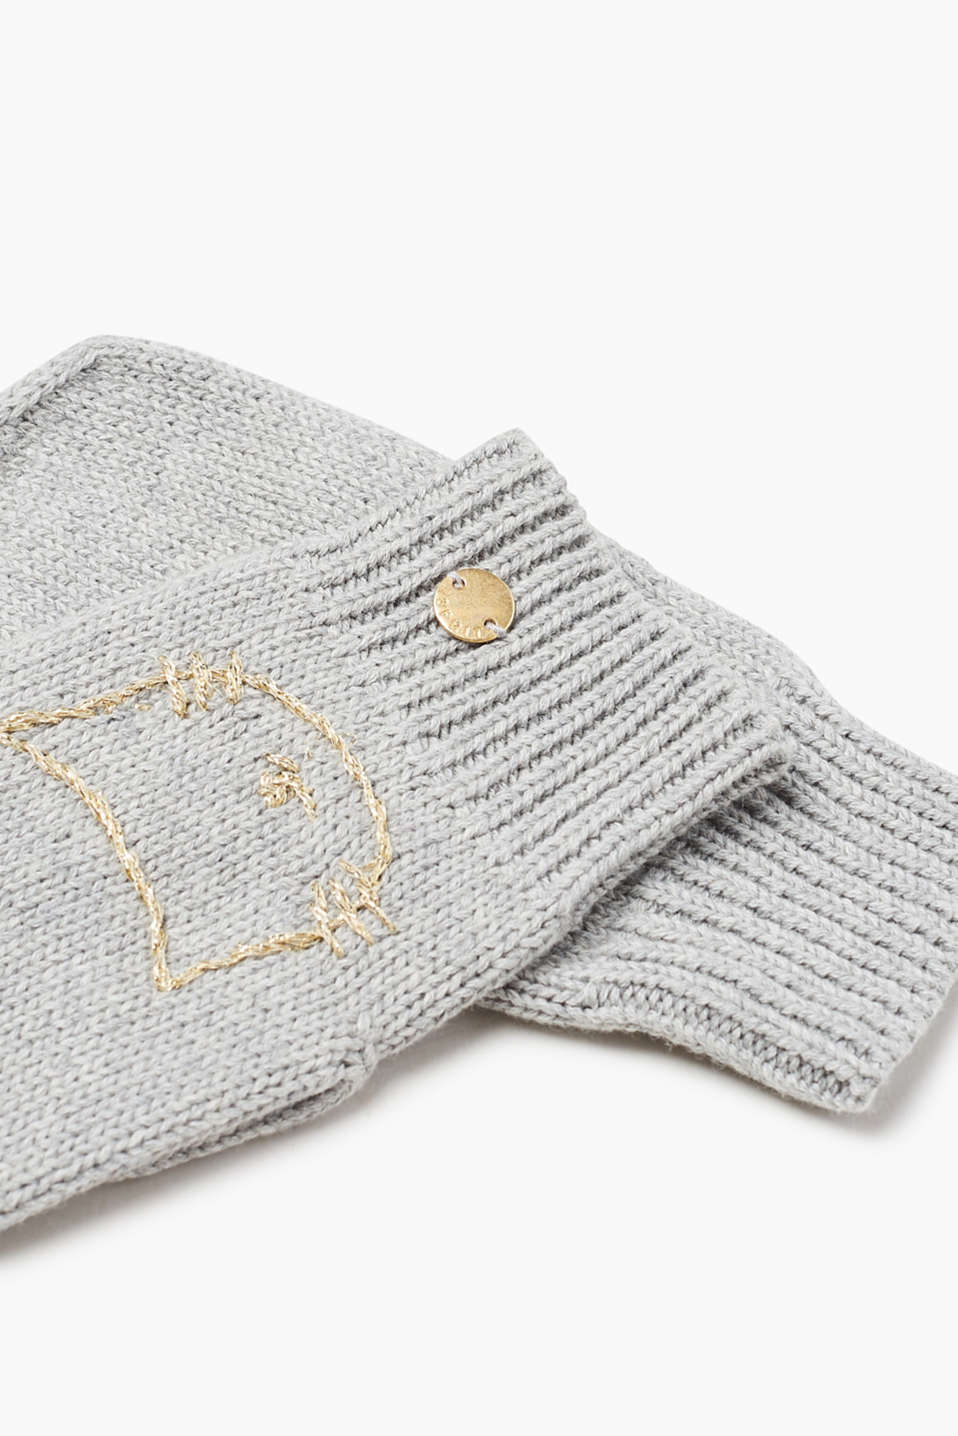 Embroidered mittens, 100% cotton